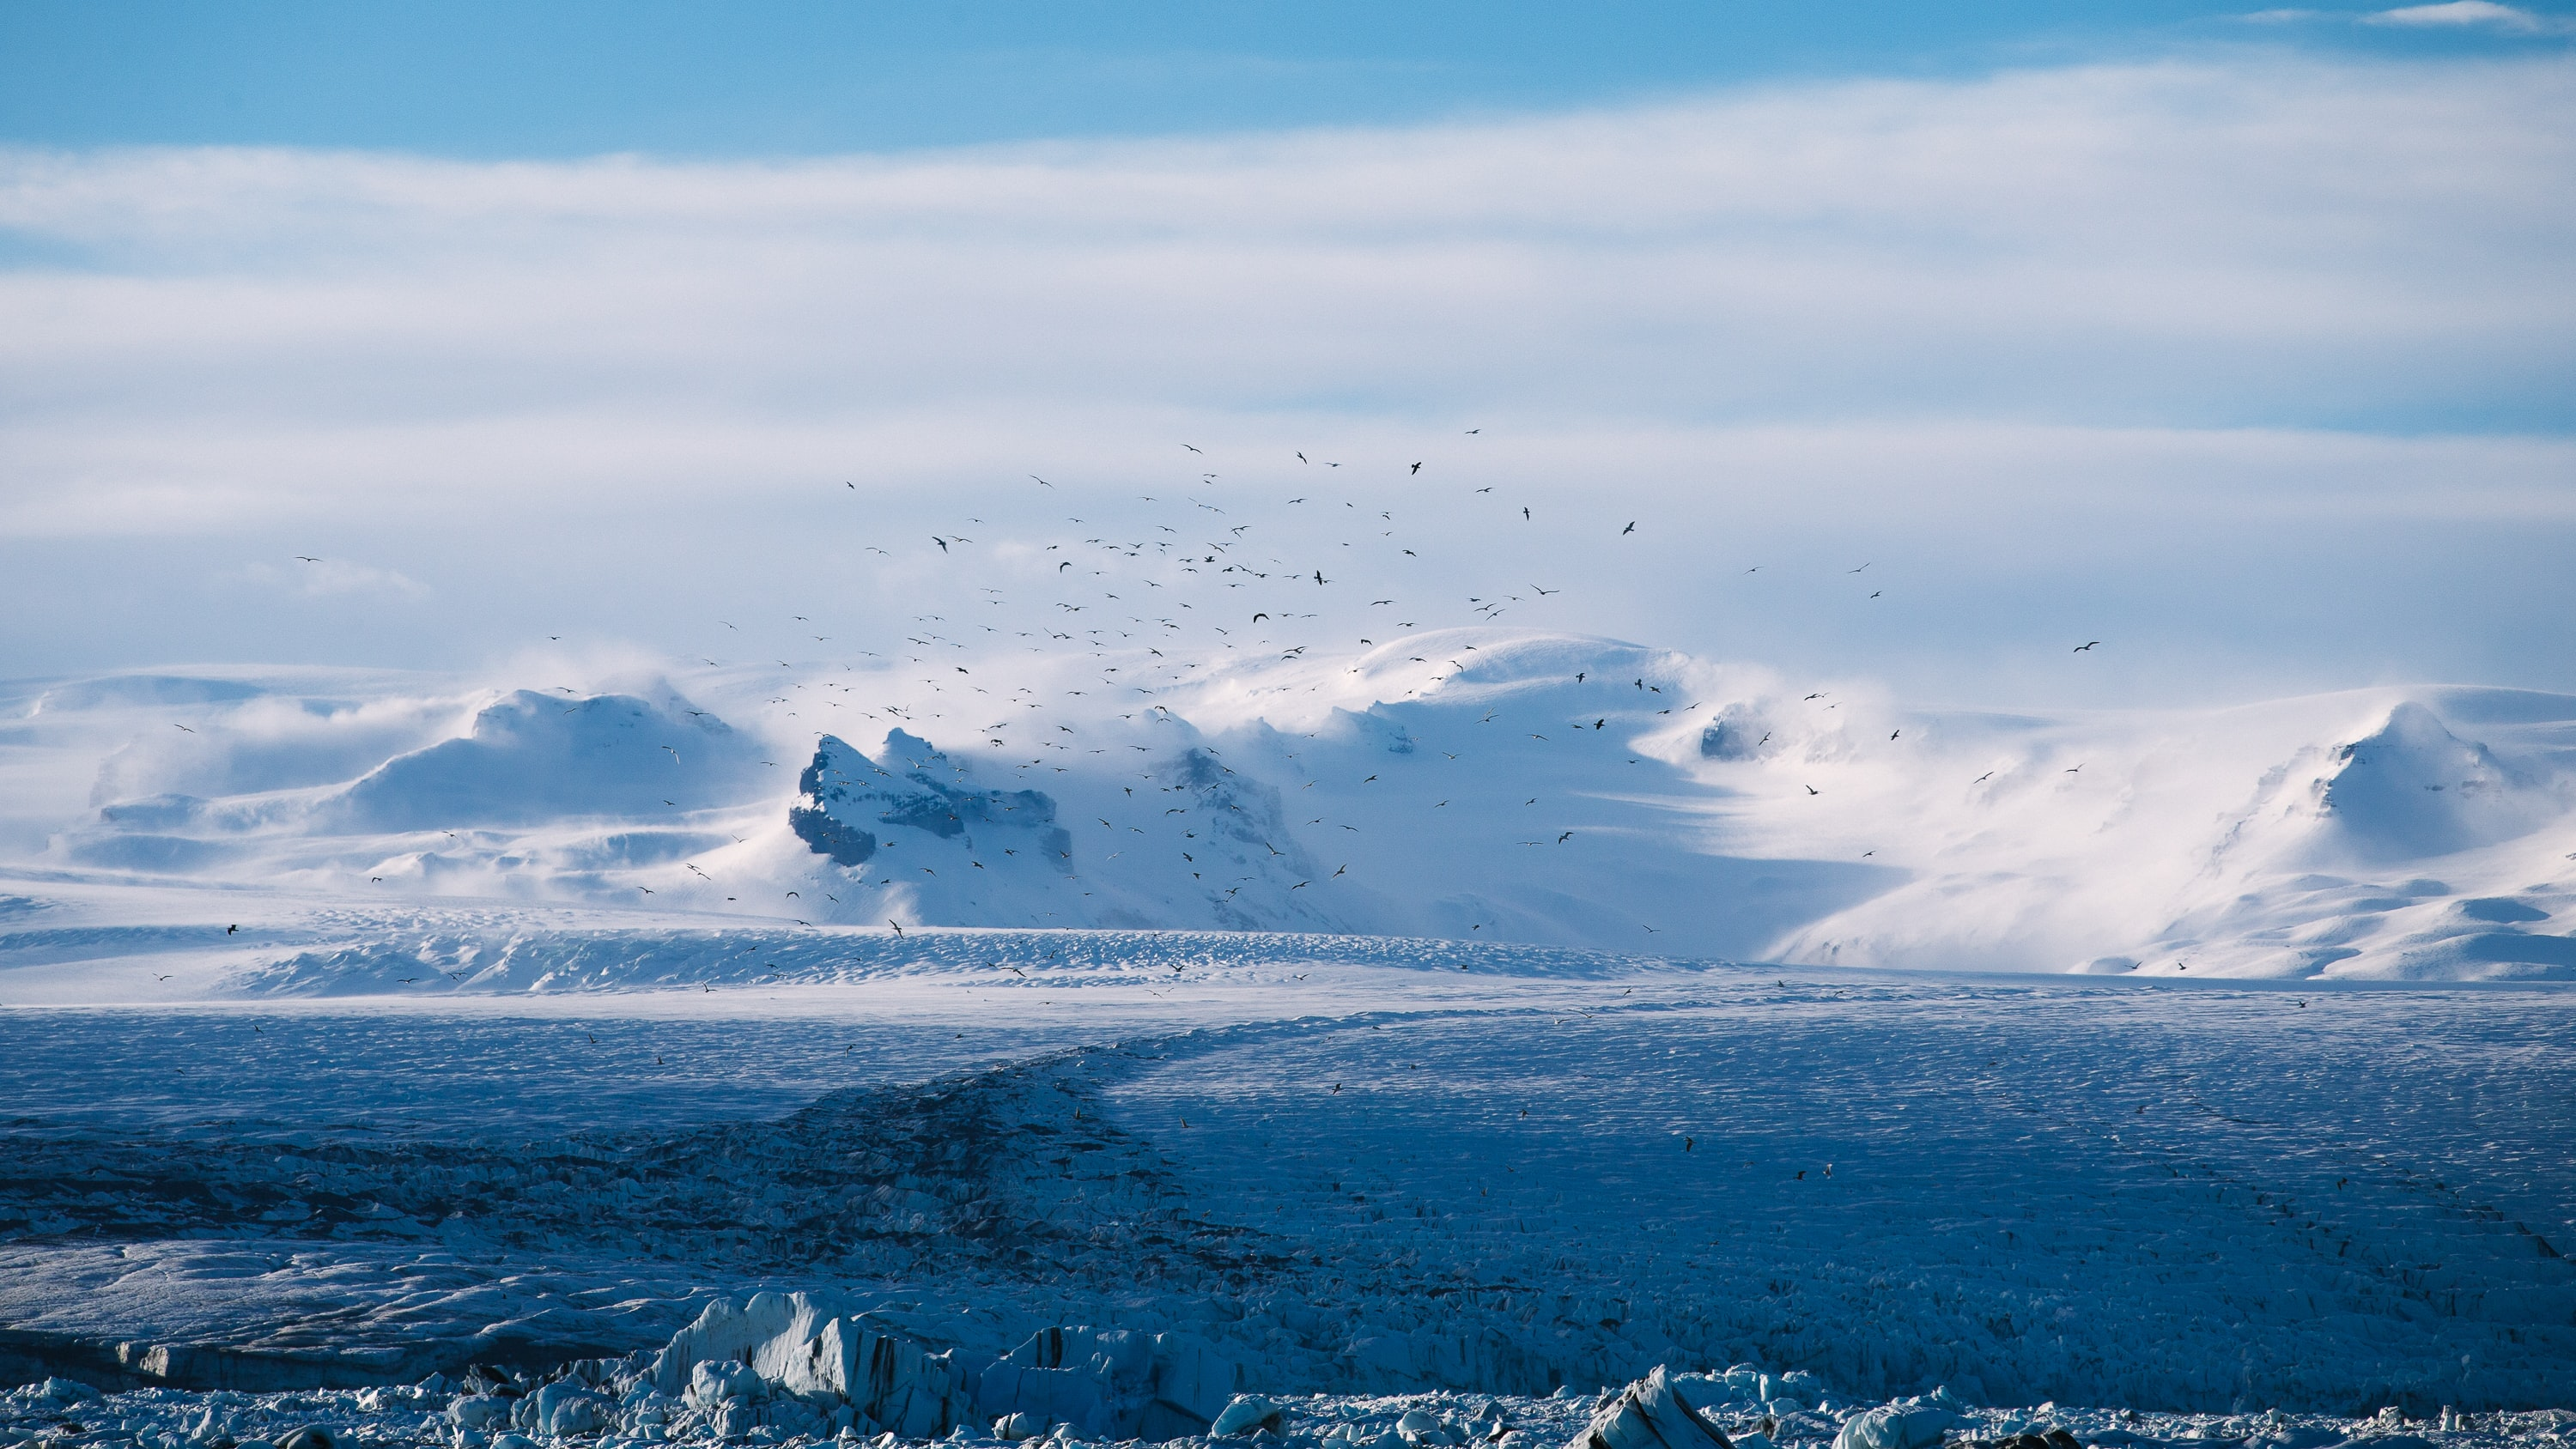 An Arctic landscape with a flock of birds circling above a glacial plain and snowy mountains at the back